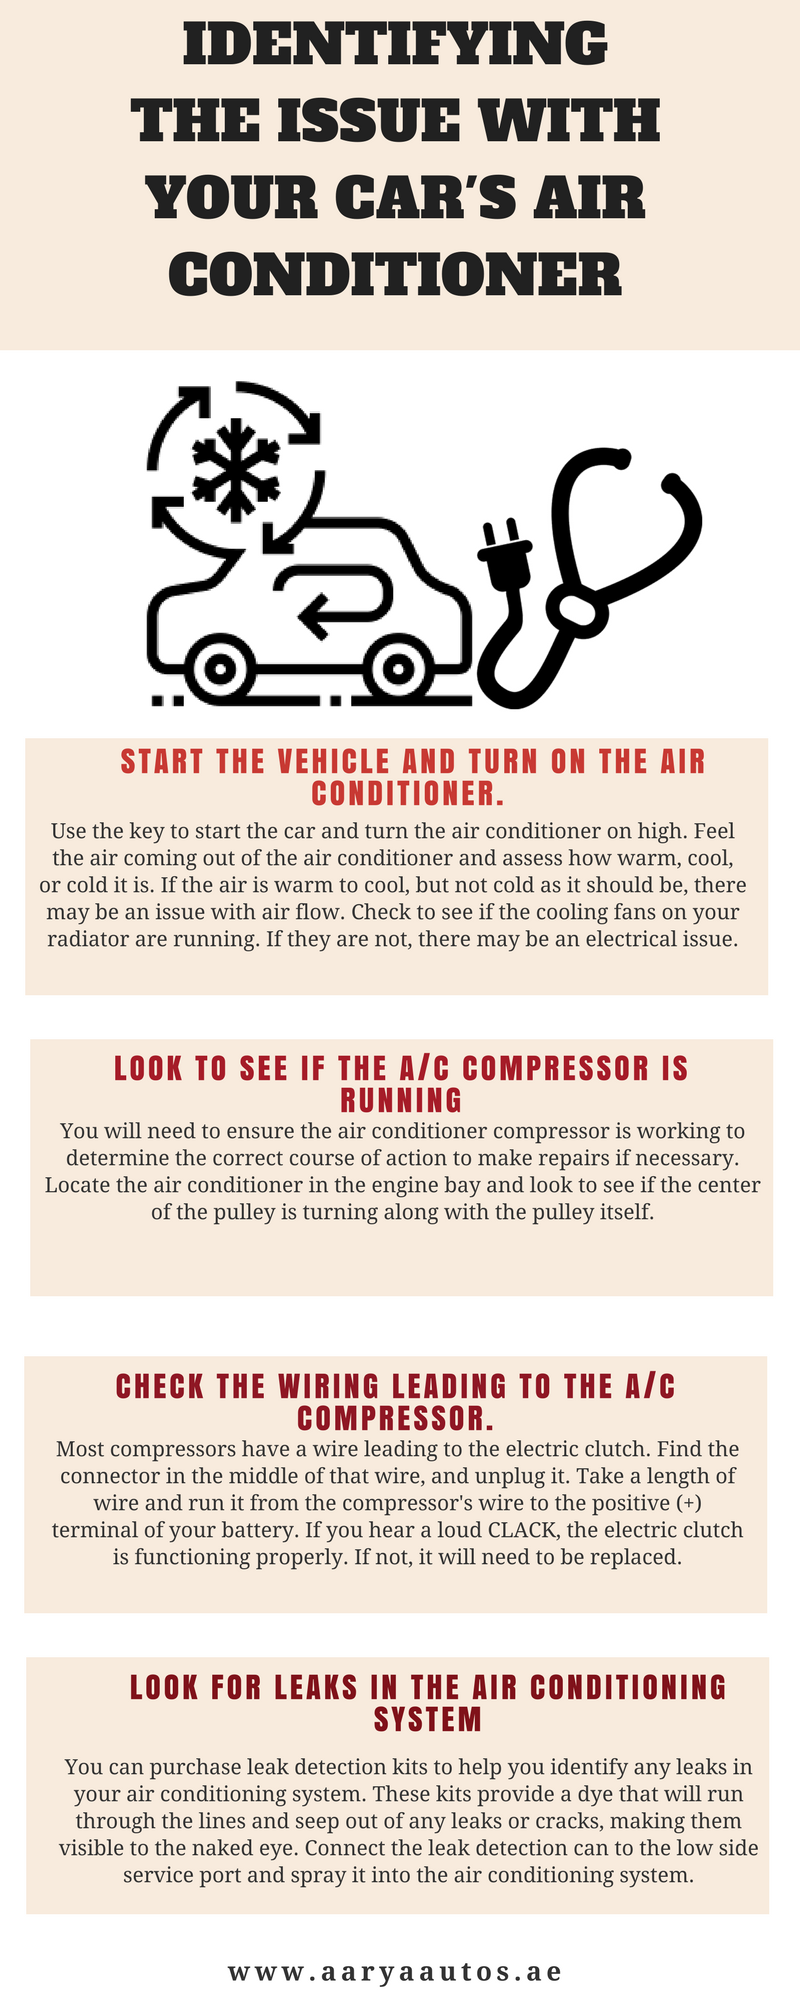 A faulty automotive air conditioner can be one of the more